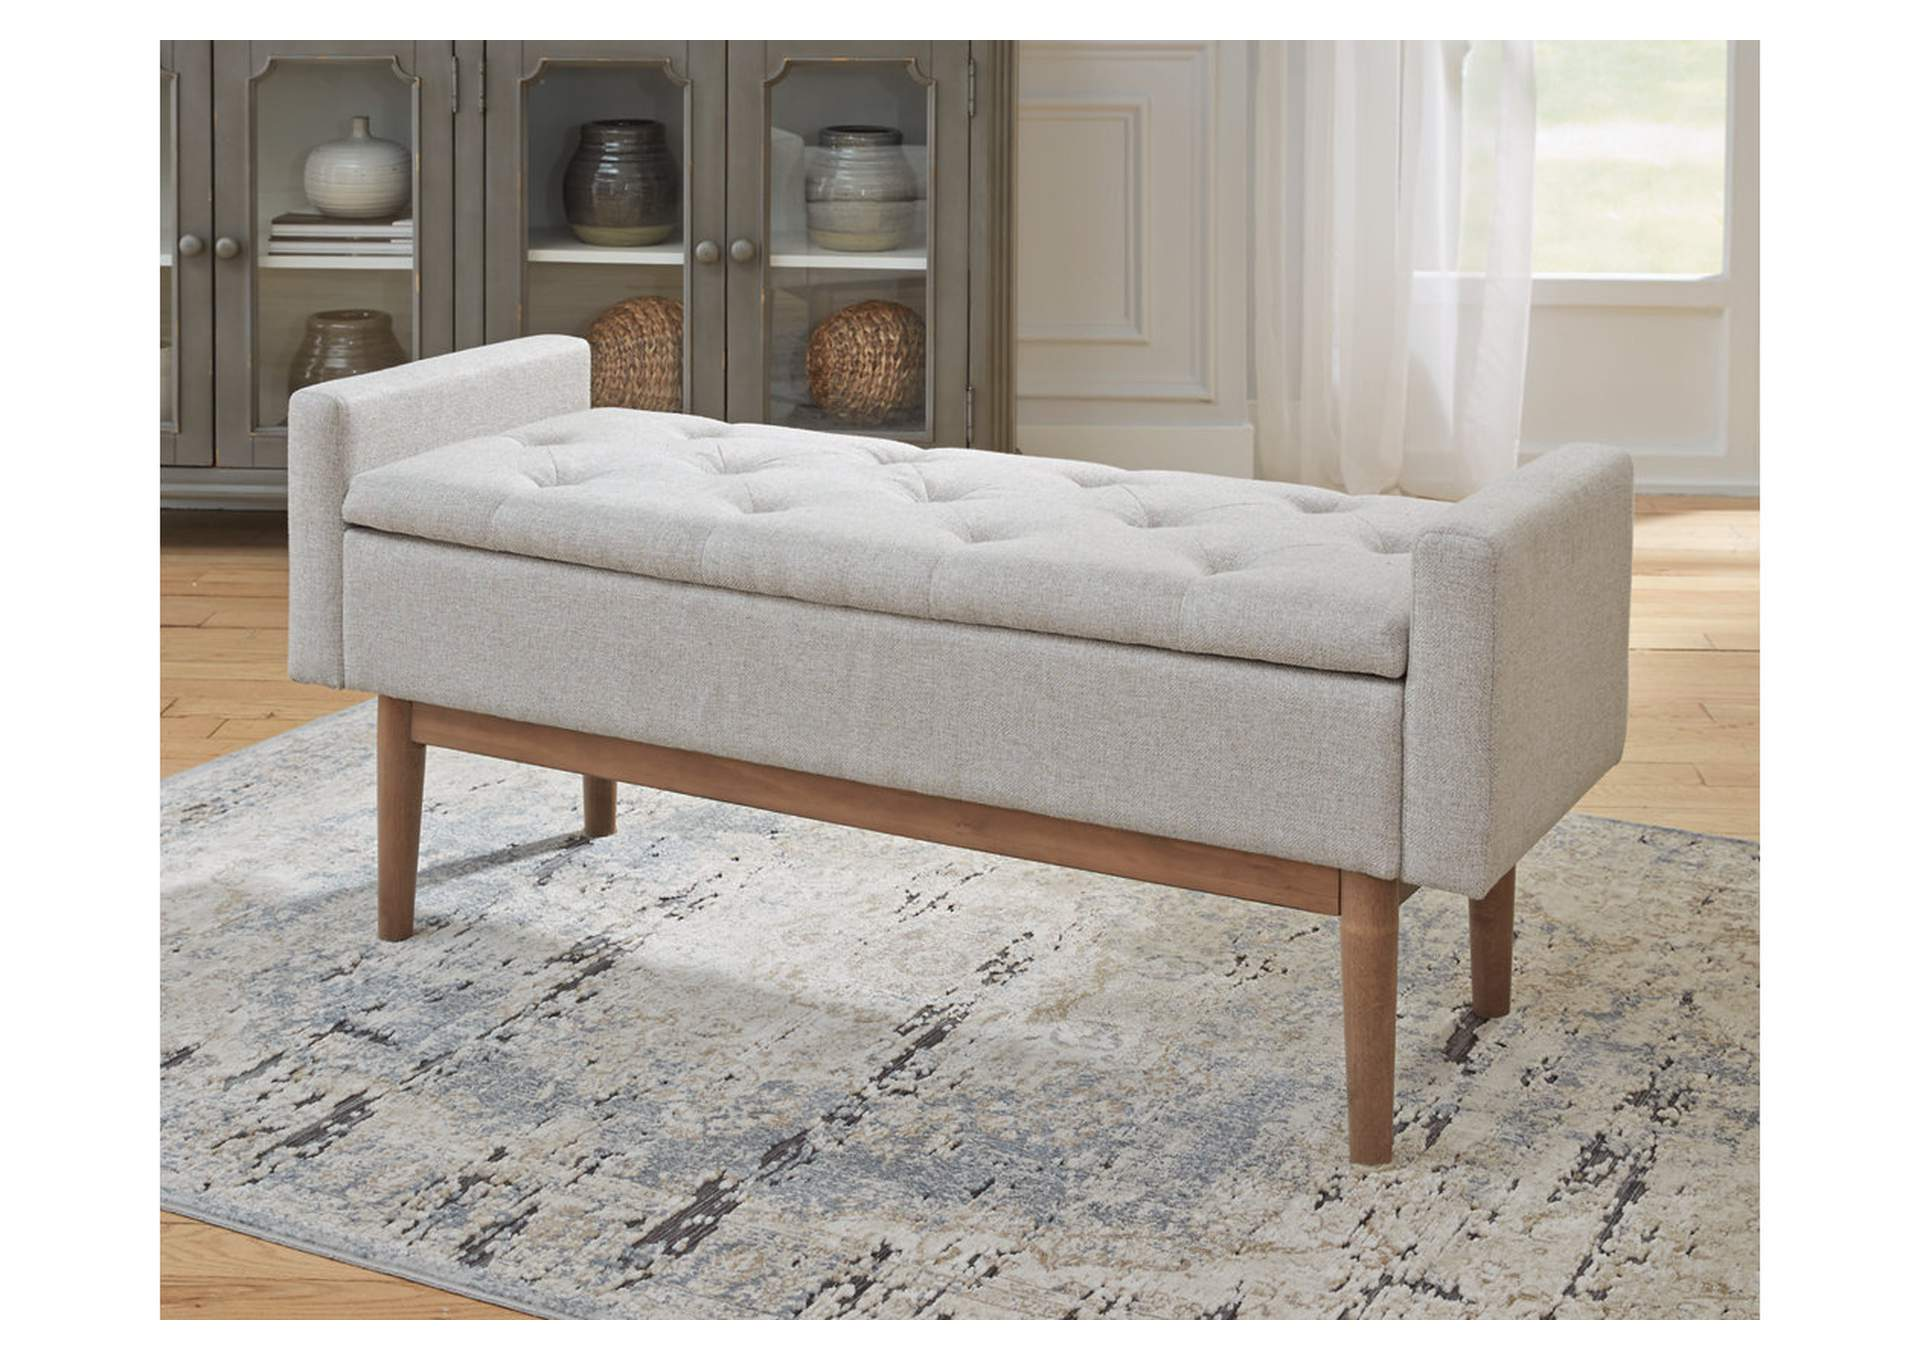 Briarson Storage Bench,Signature Design By Ashley